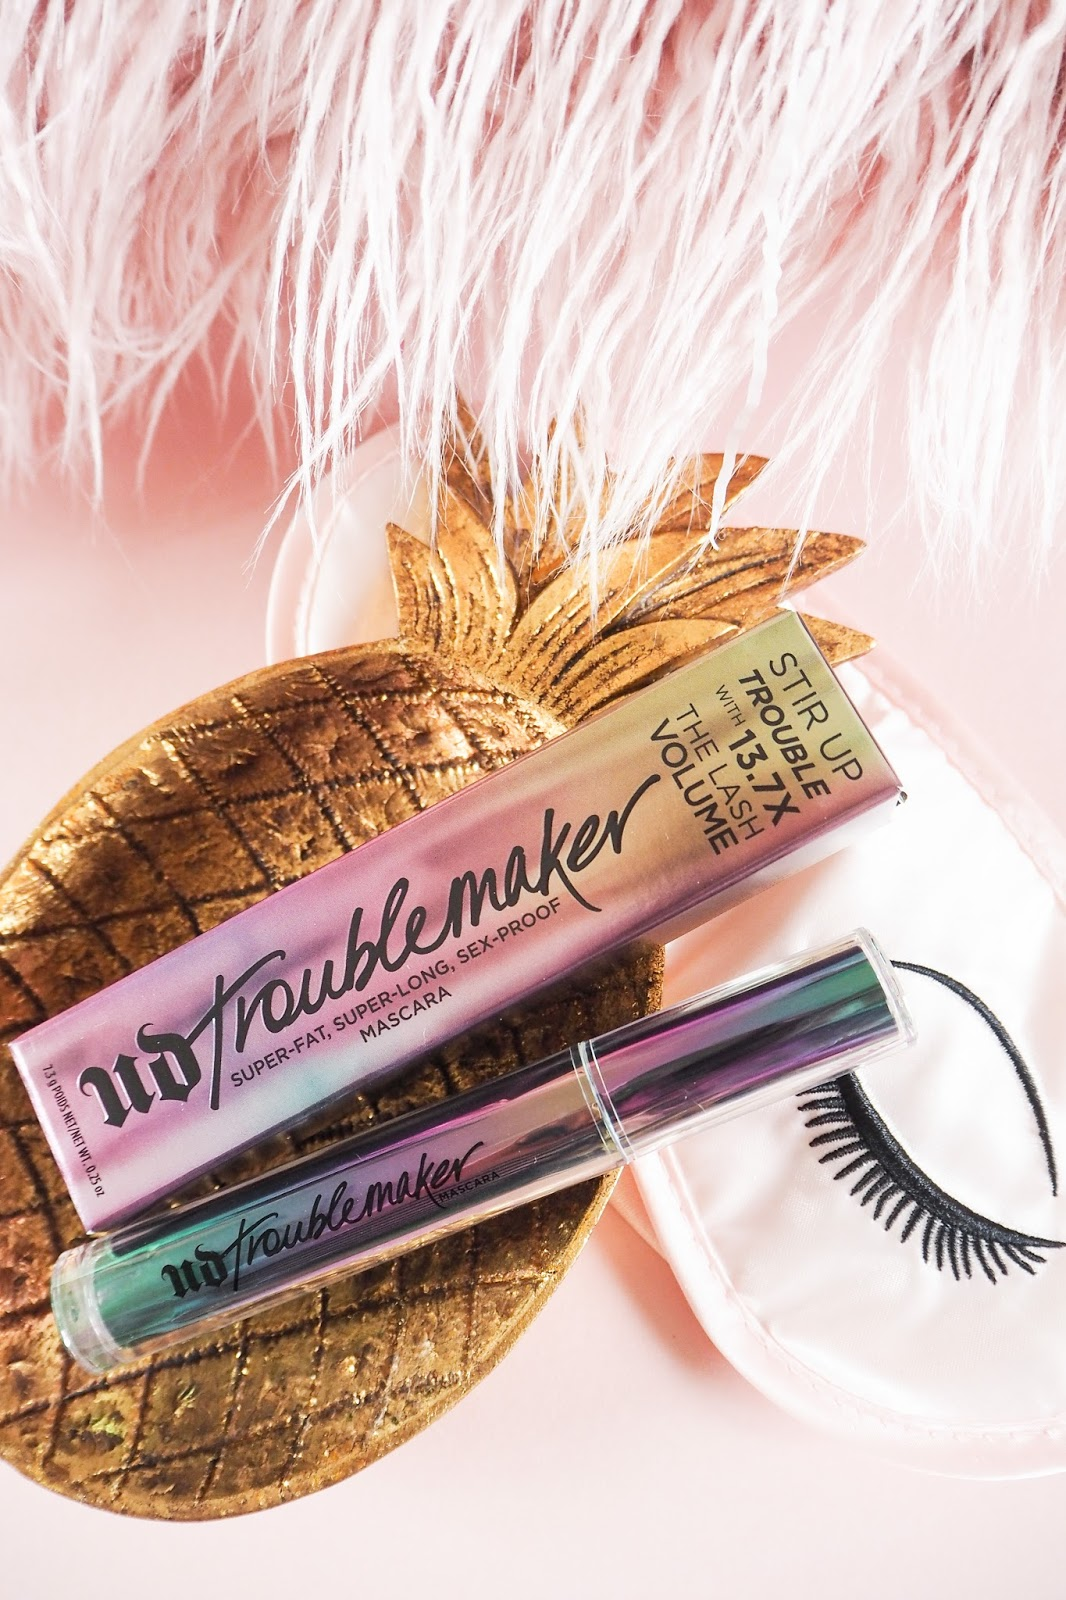 Urban Decay Troublemaker Mascara Review